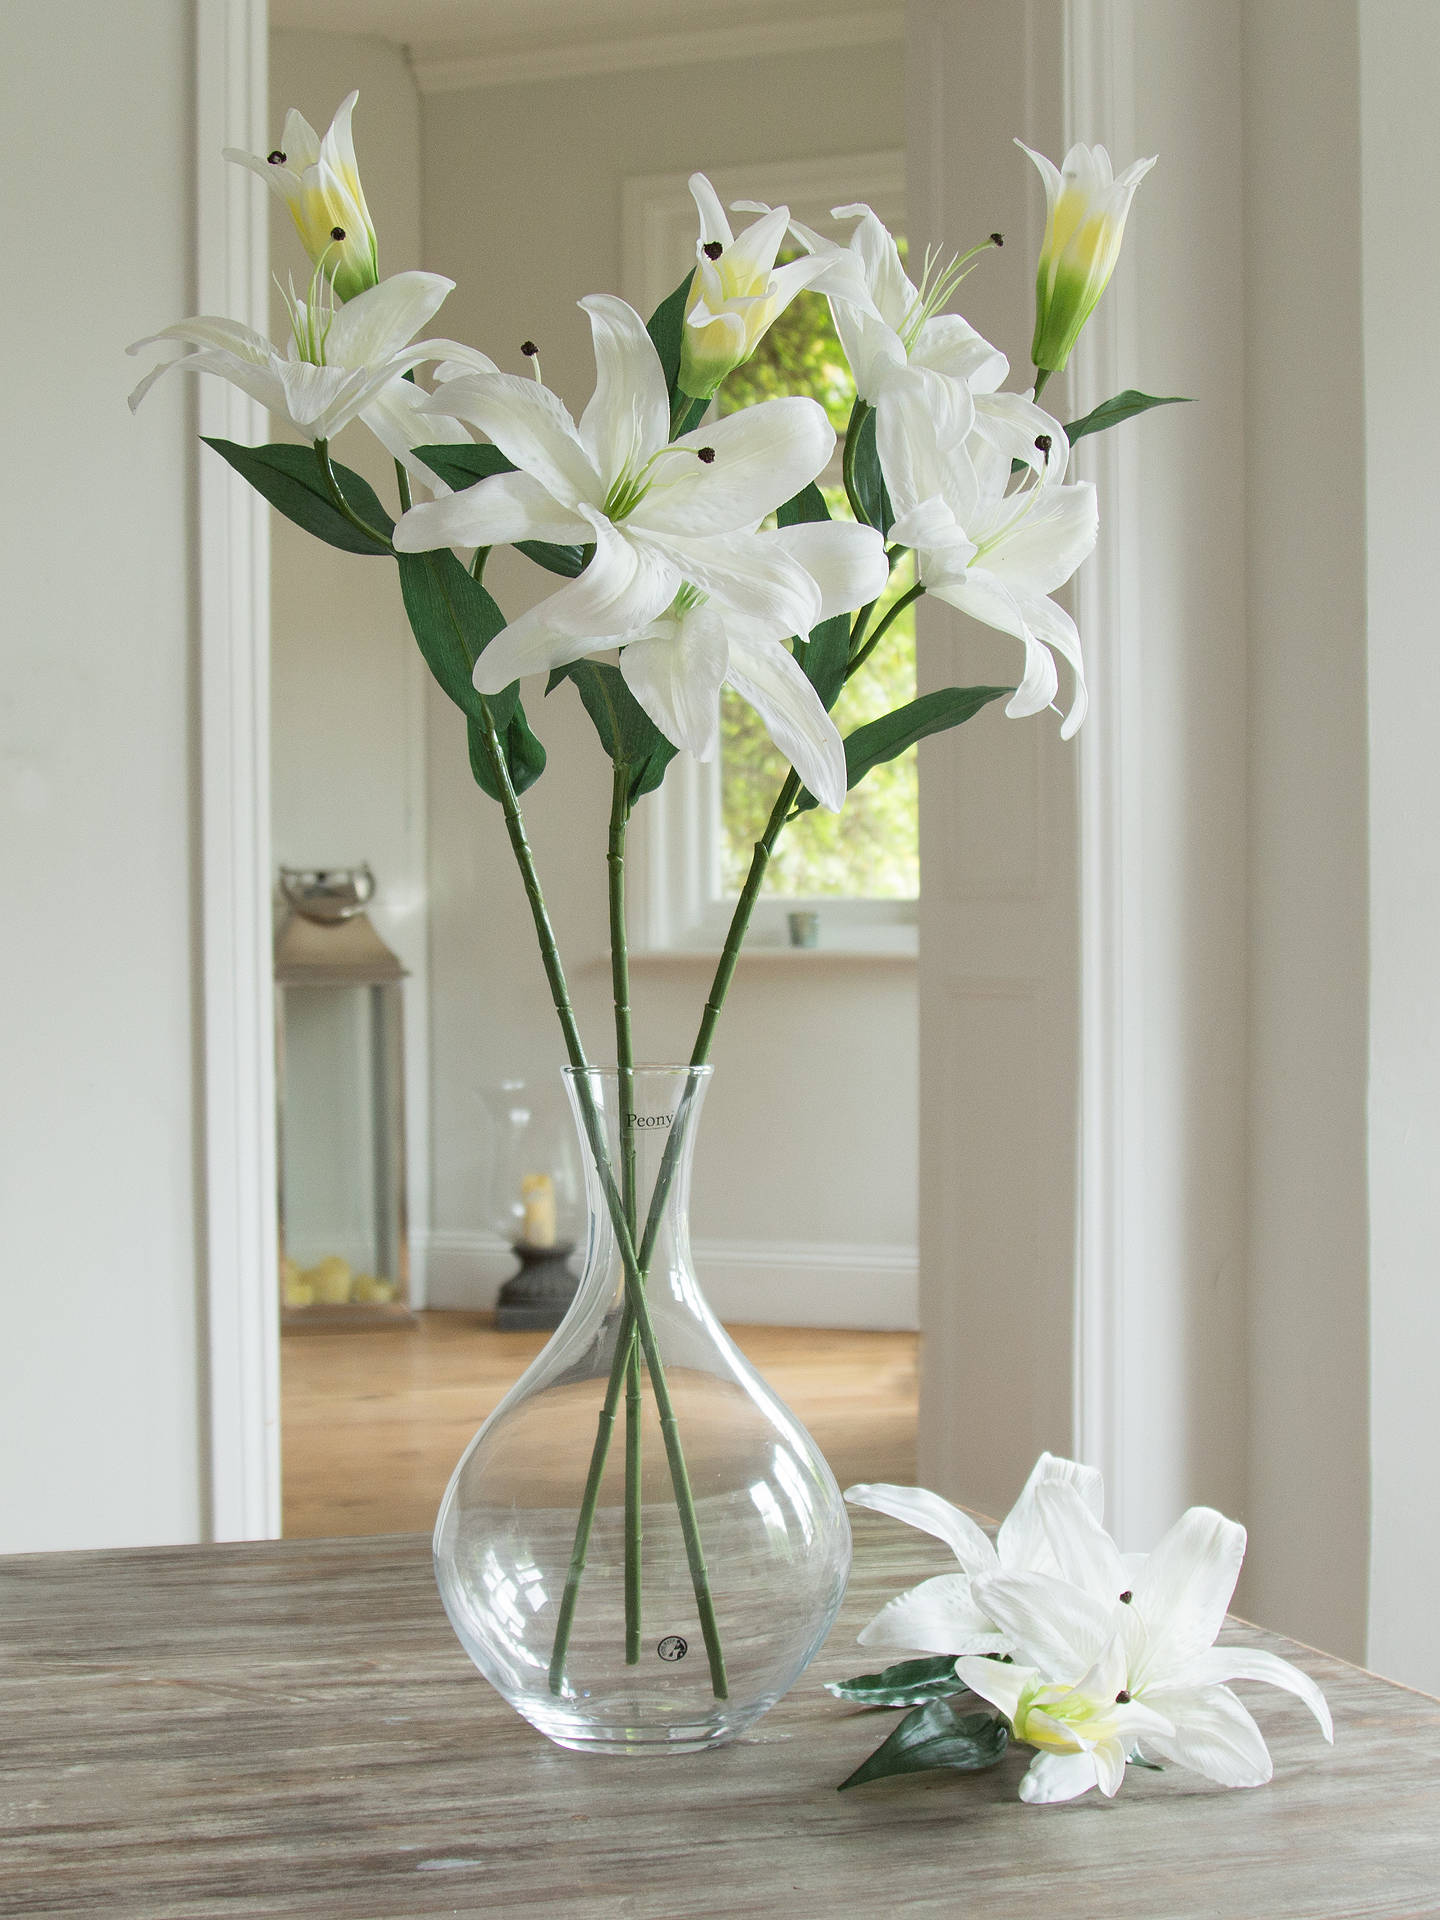 Peony artificial casablanca lilies white at john lewis partners buypeony artificial casablanca lilies white online at johnlewis izmirmasajfo